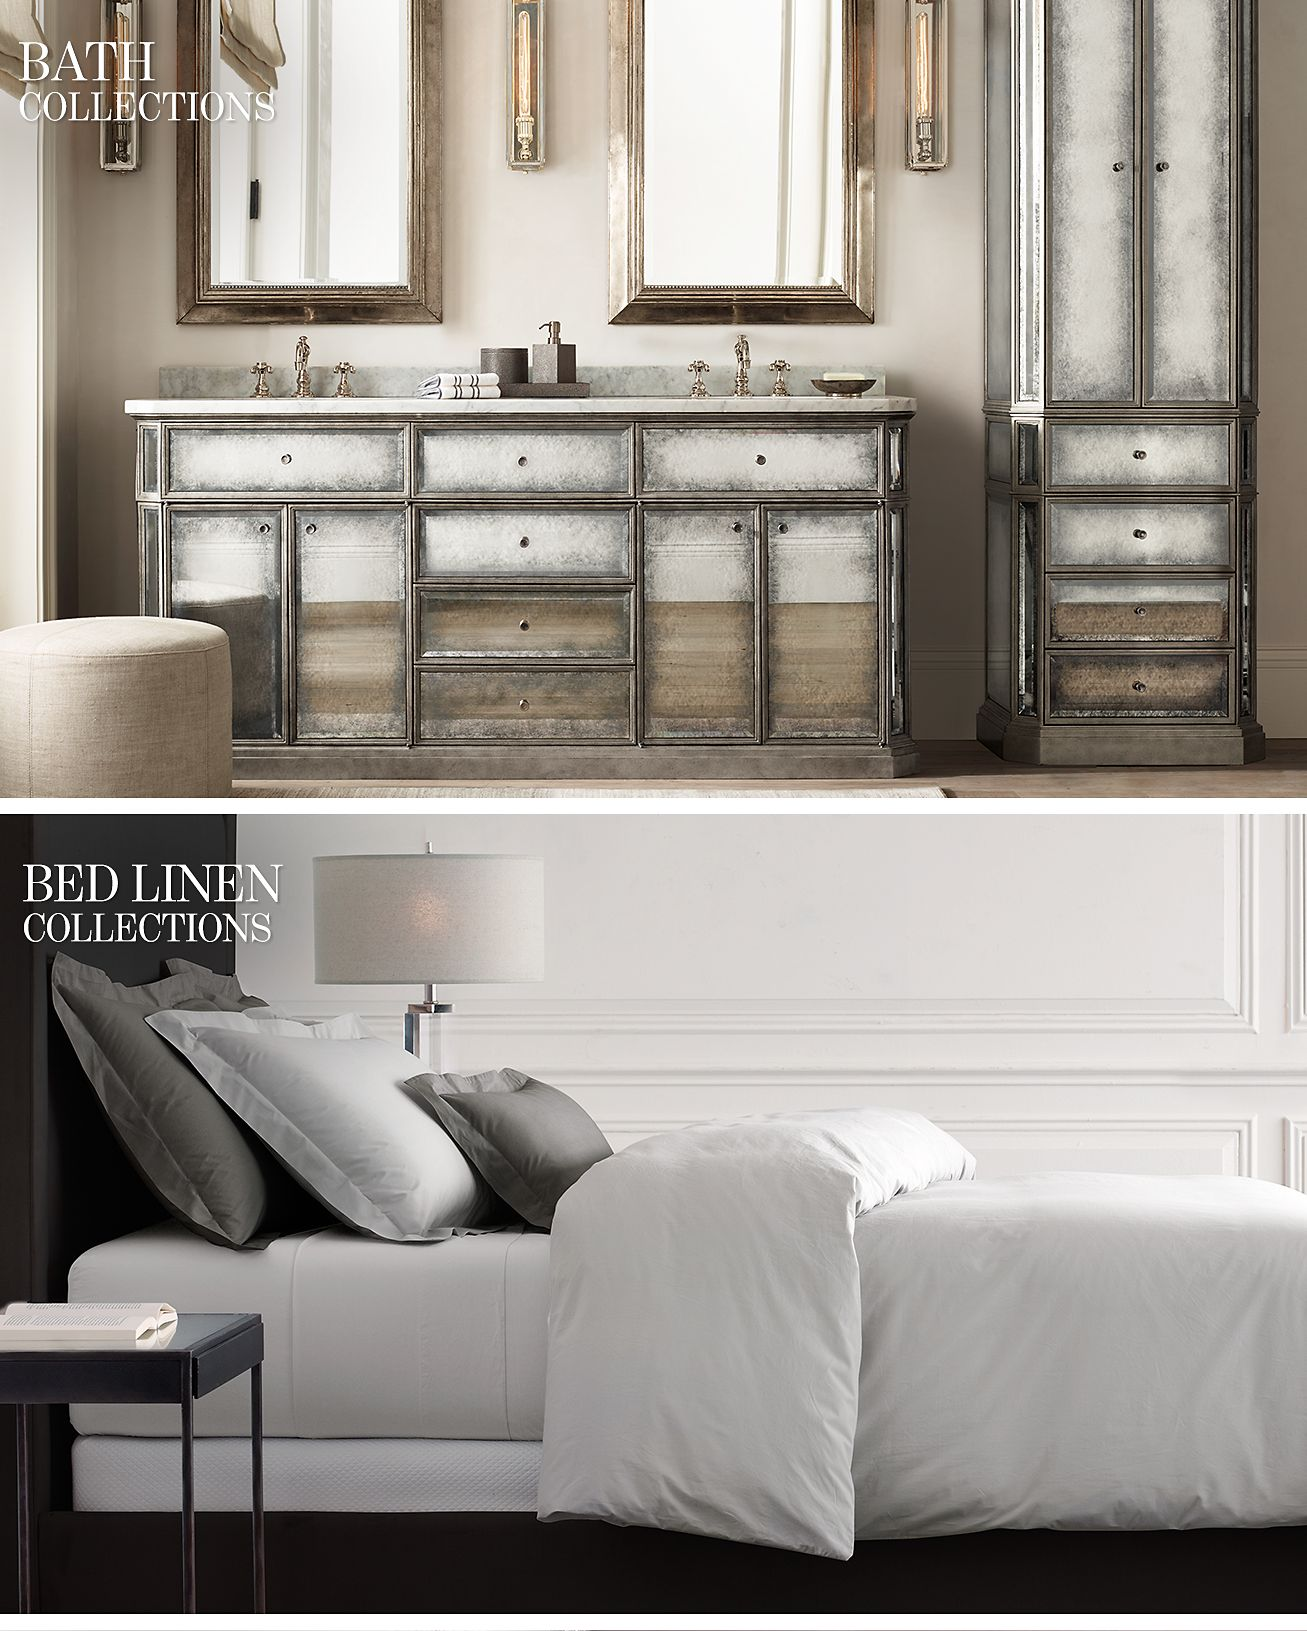 Restoration Hardware Sale: Restoration Hardware: Annual Bed & Bath Event Starts Today